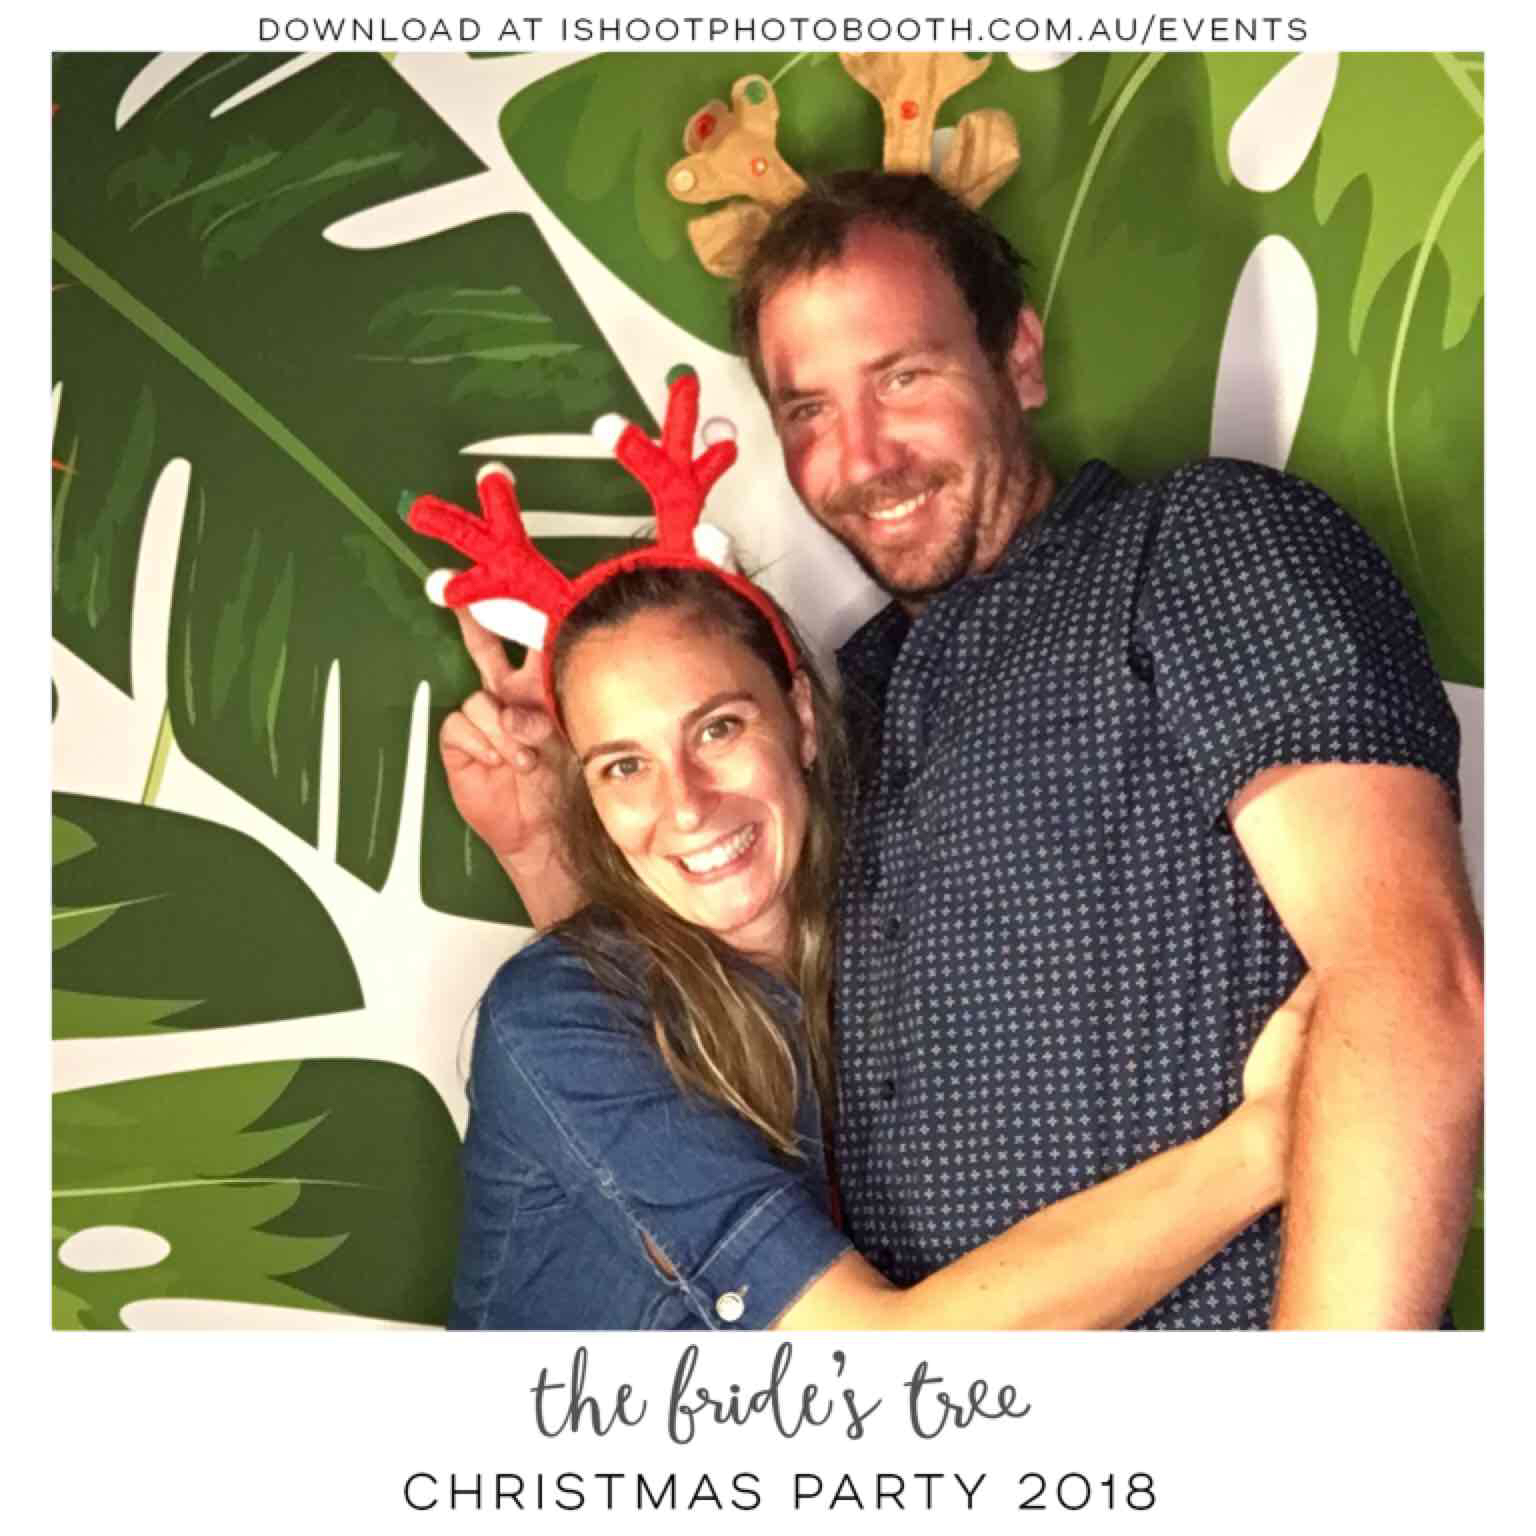 Bride's_Tree_Christmas_Party_-overlay-9517d2-01